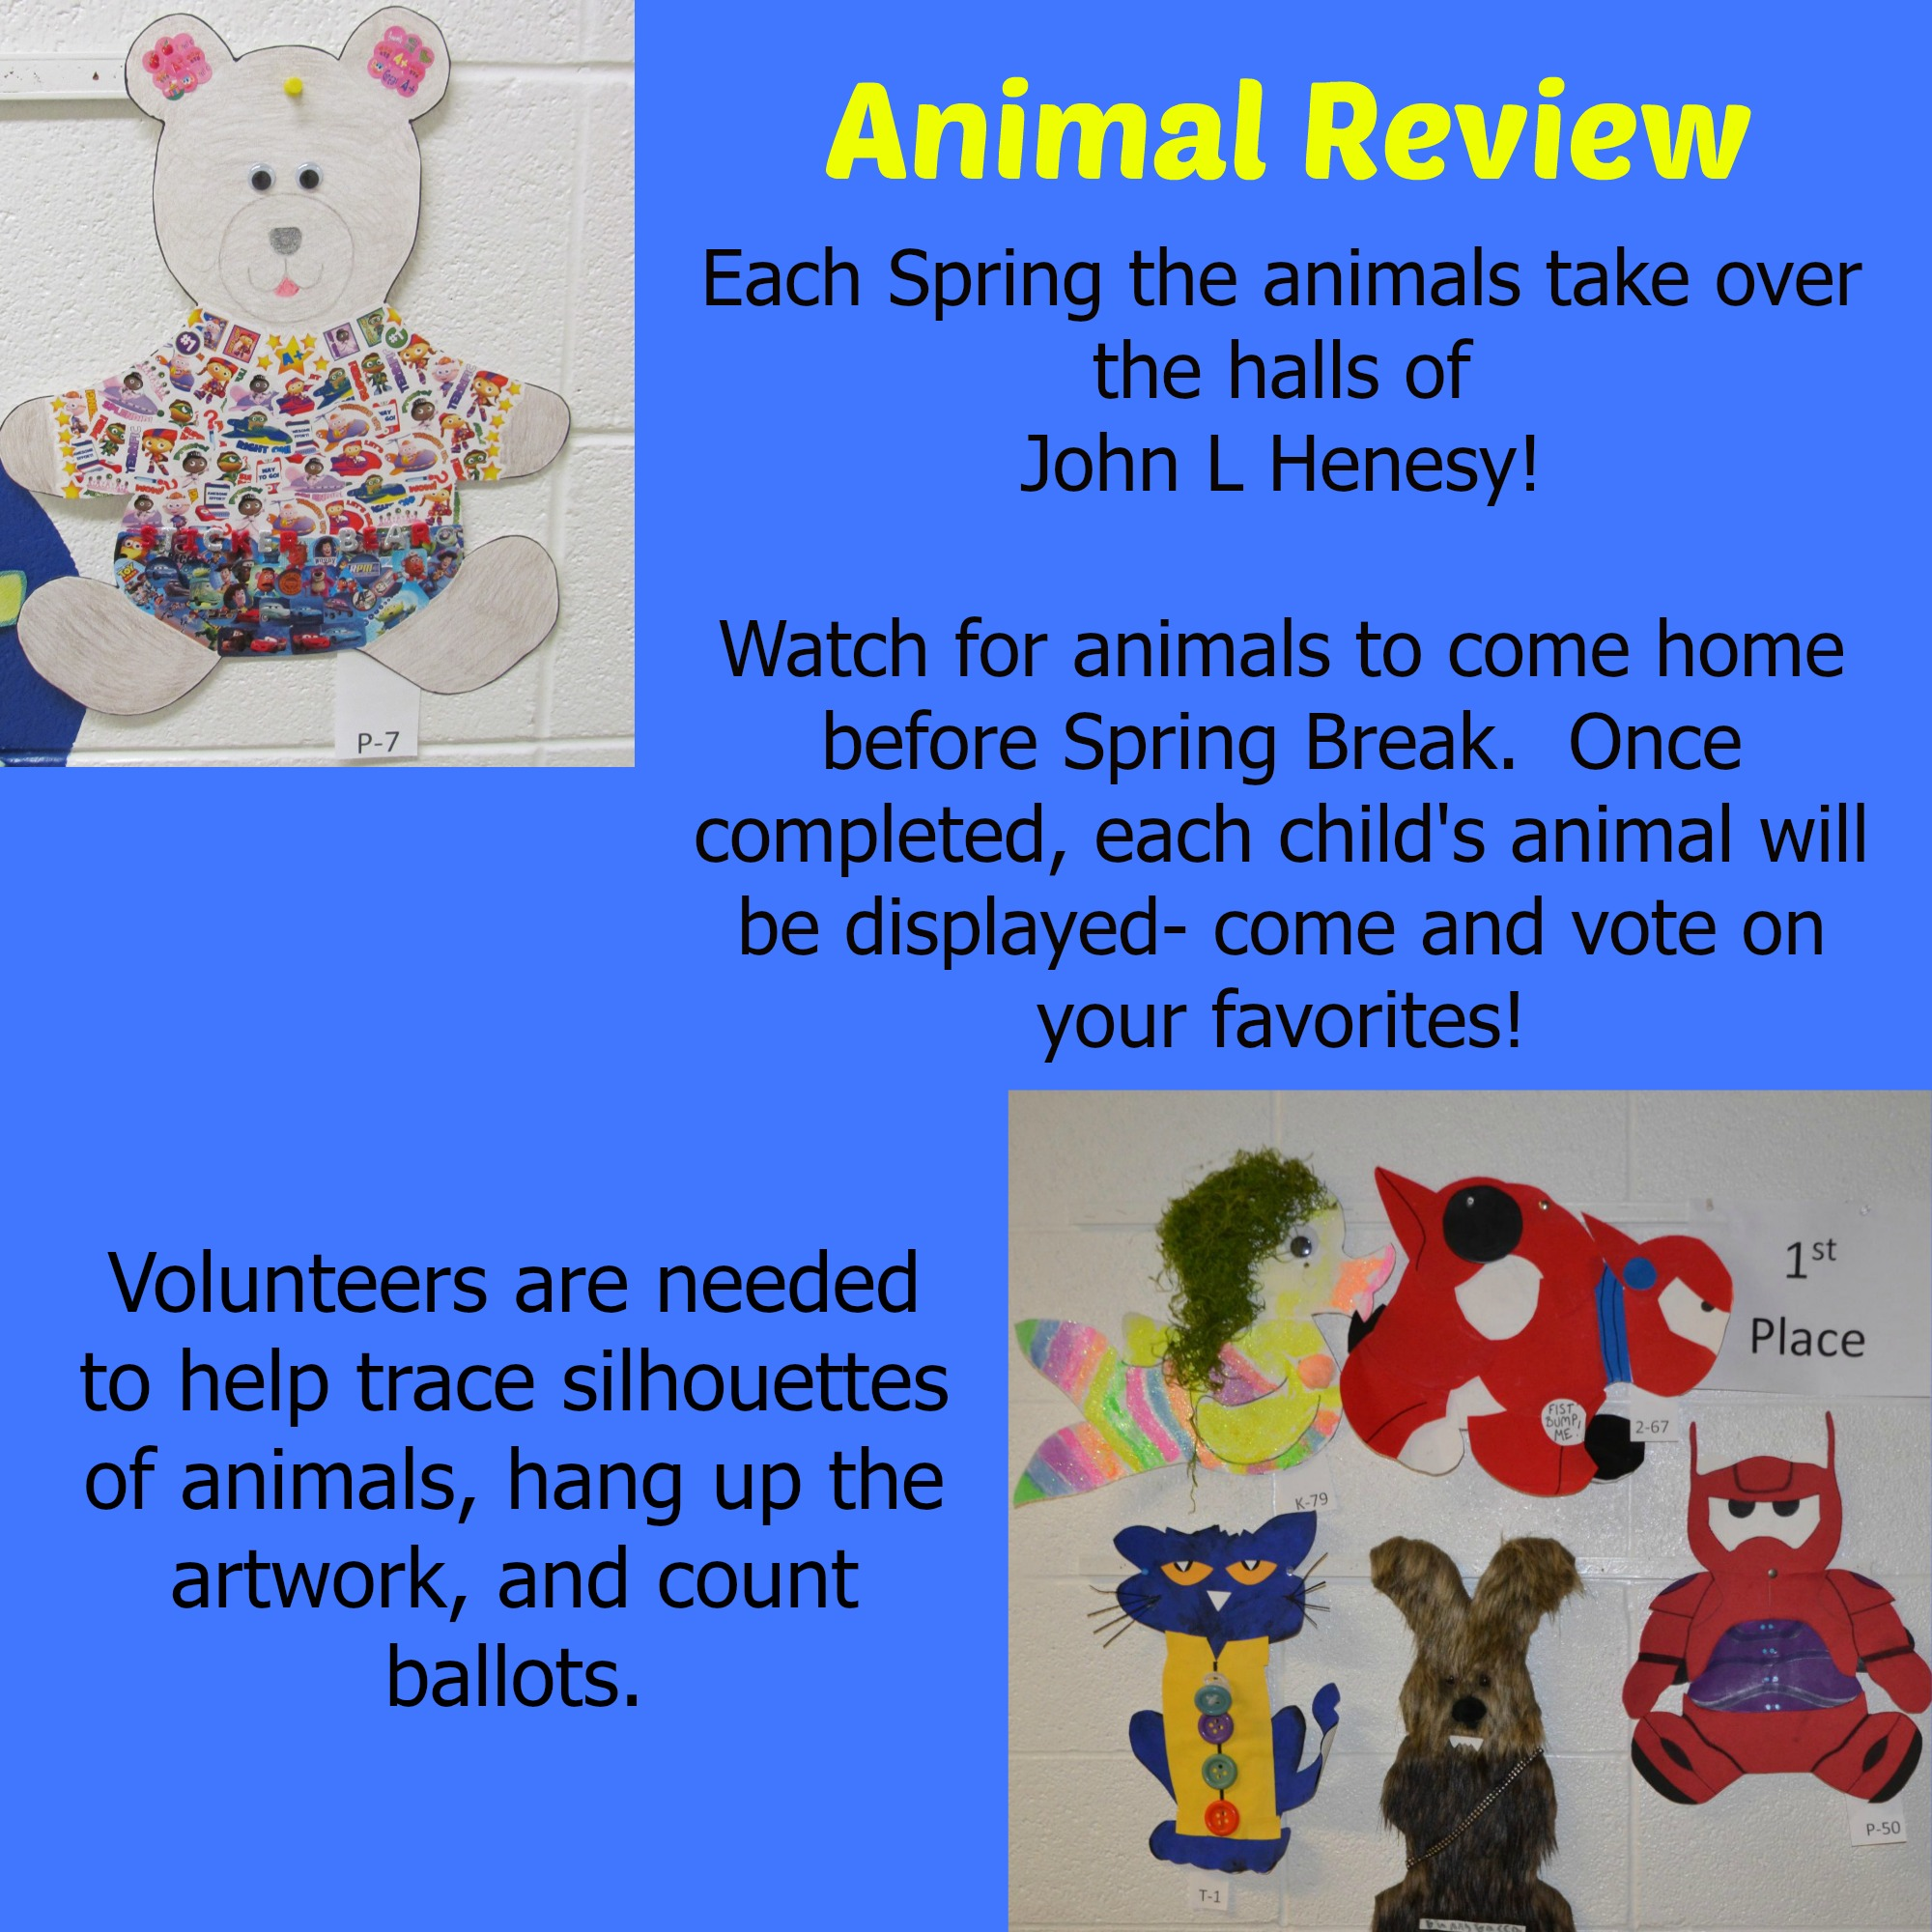 Animal Review poster